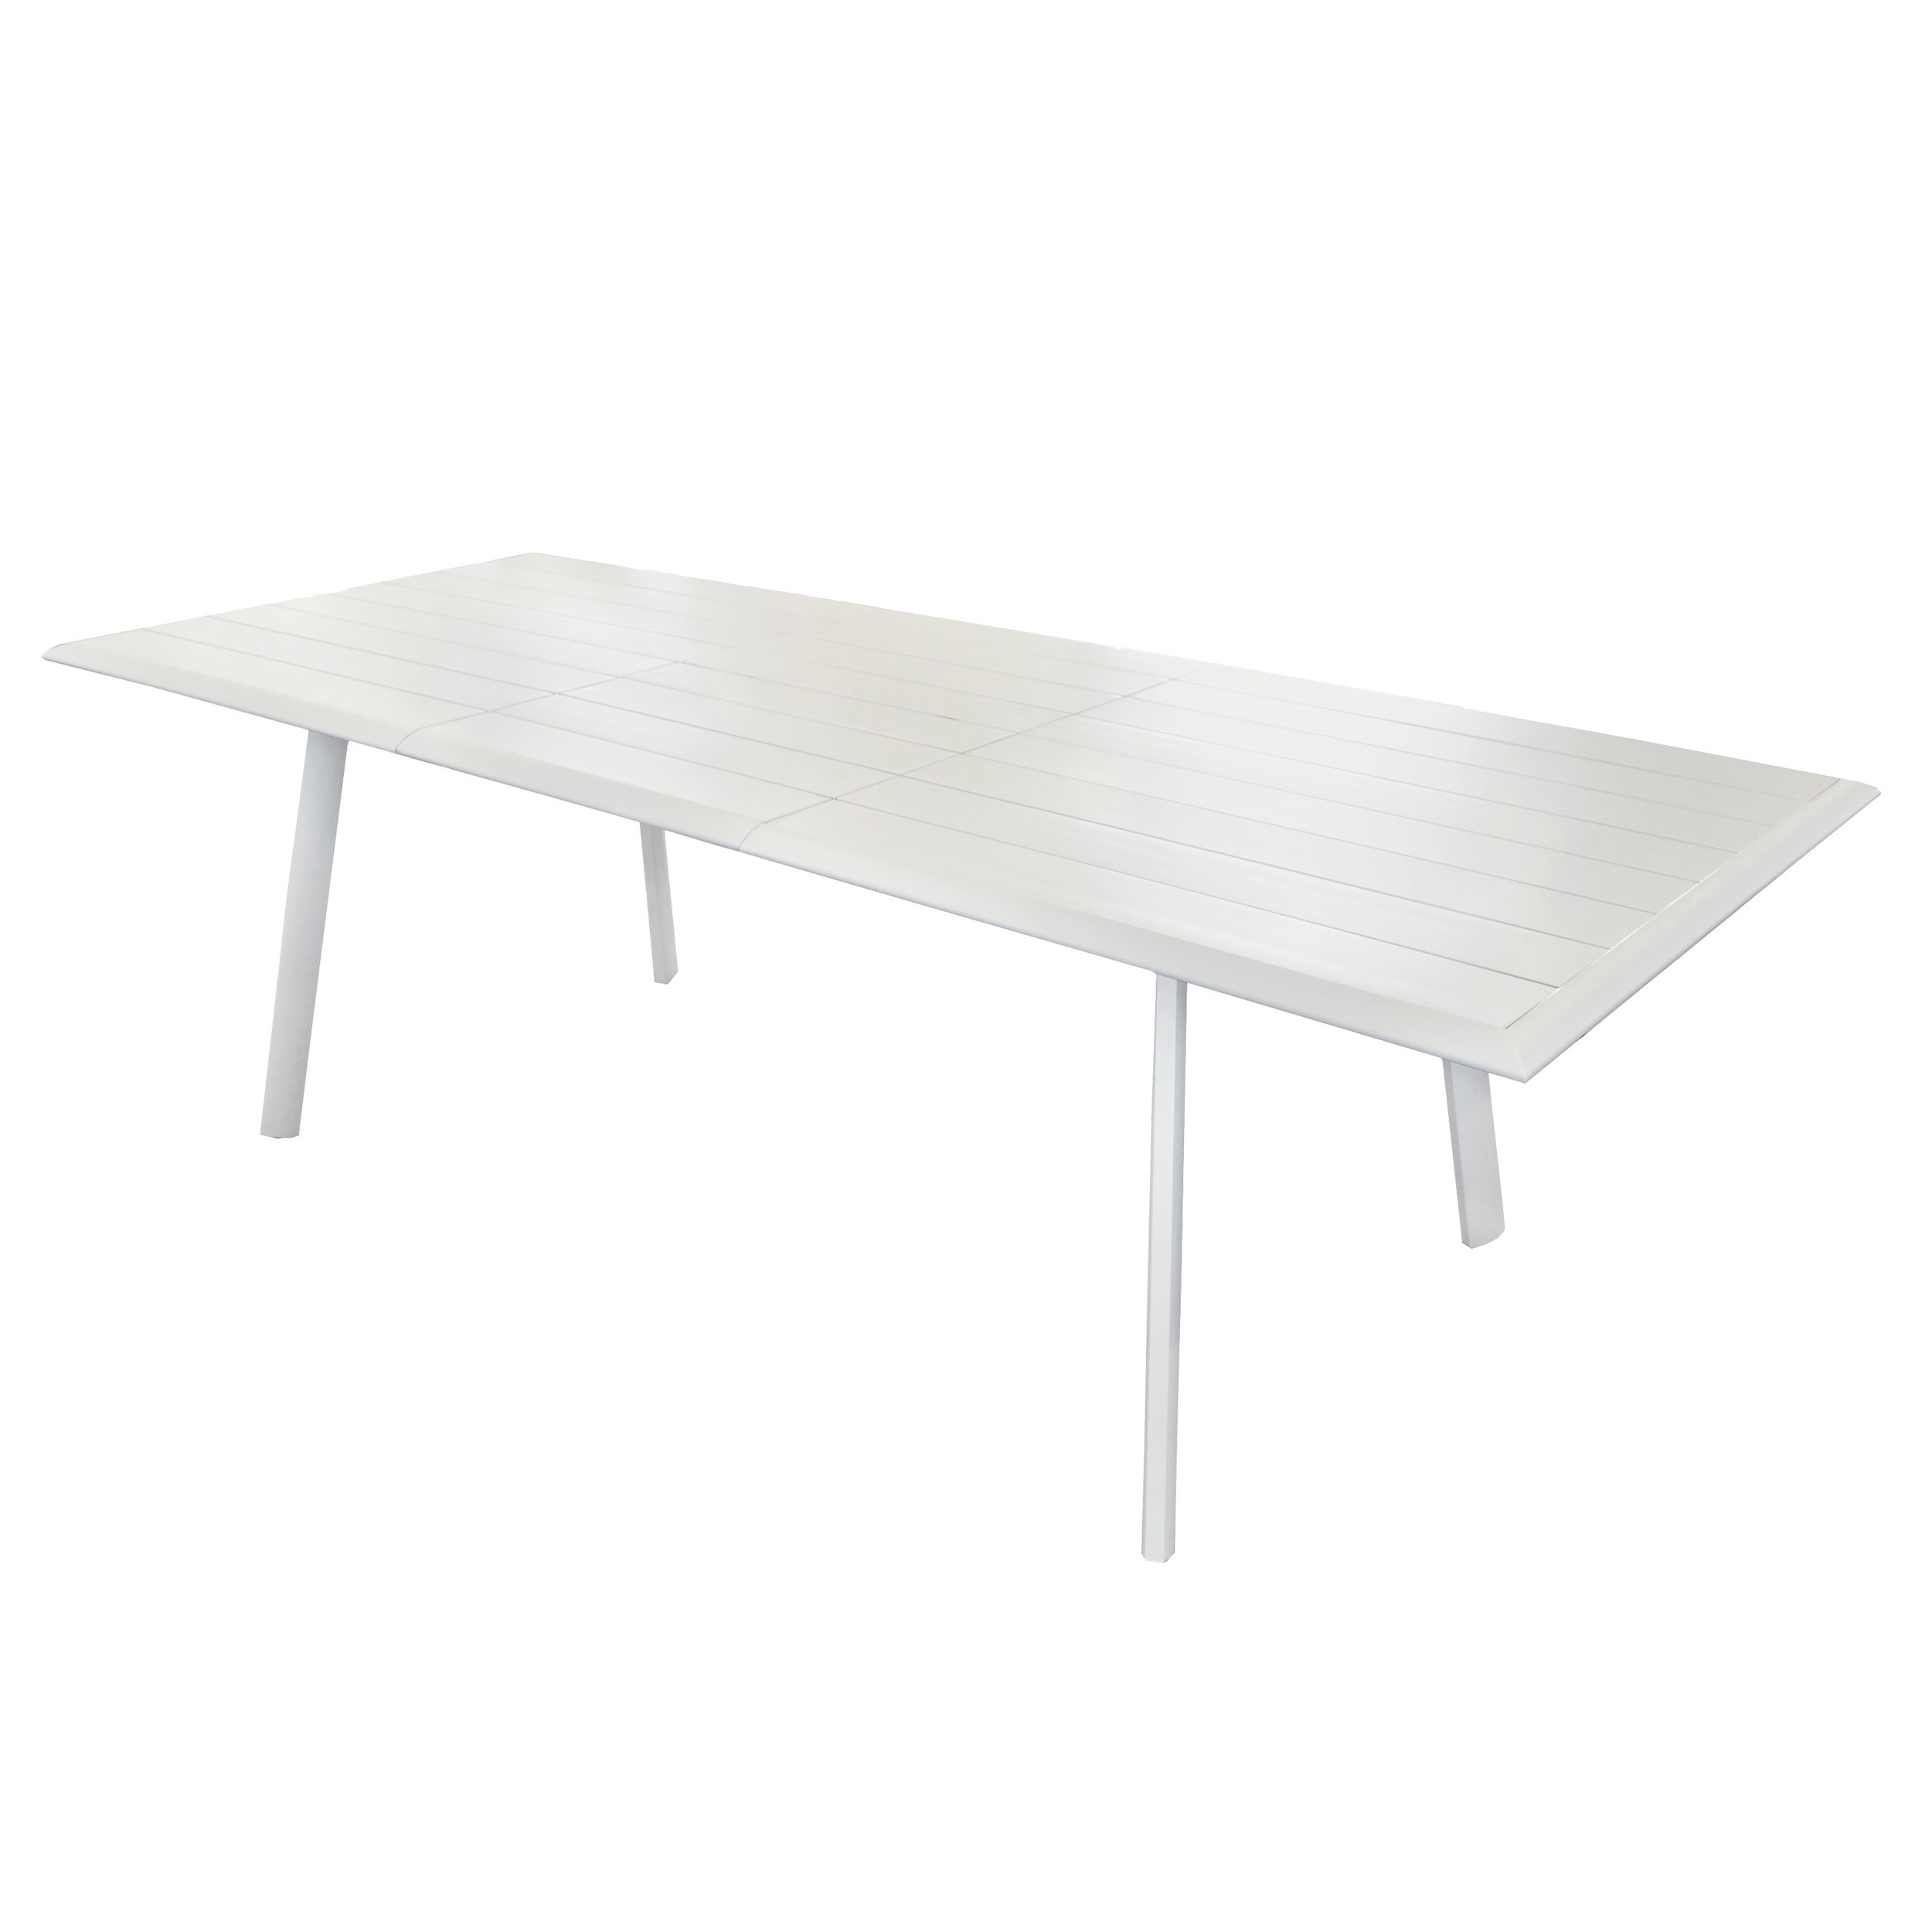 Emejing Table De Jardin Extensible Modulo Contemporary - House ...